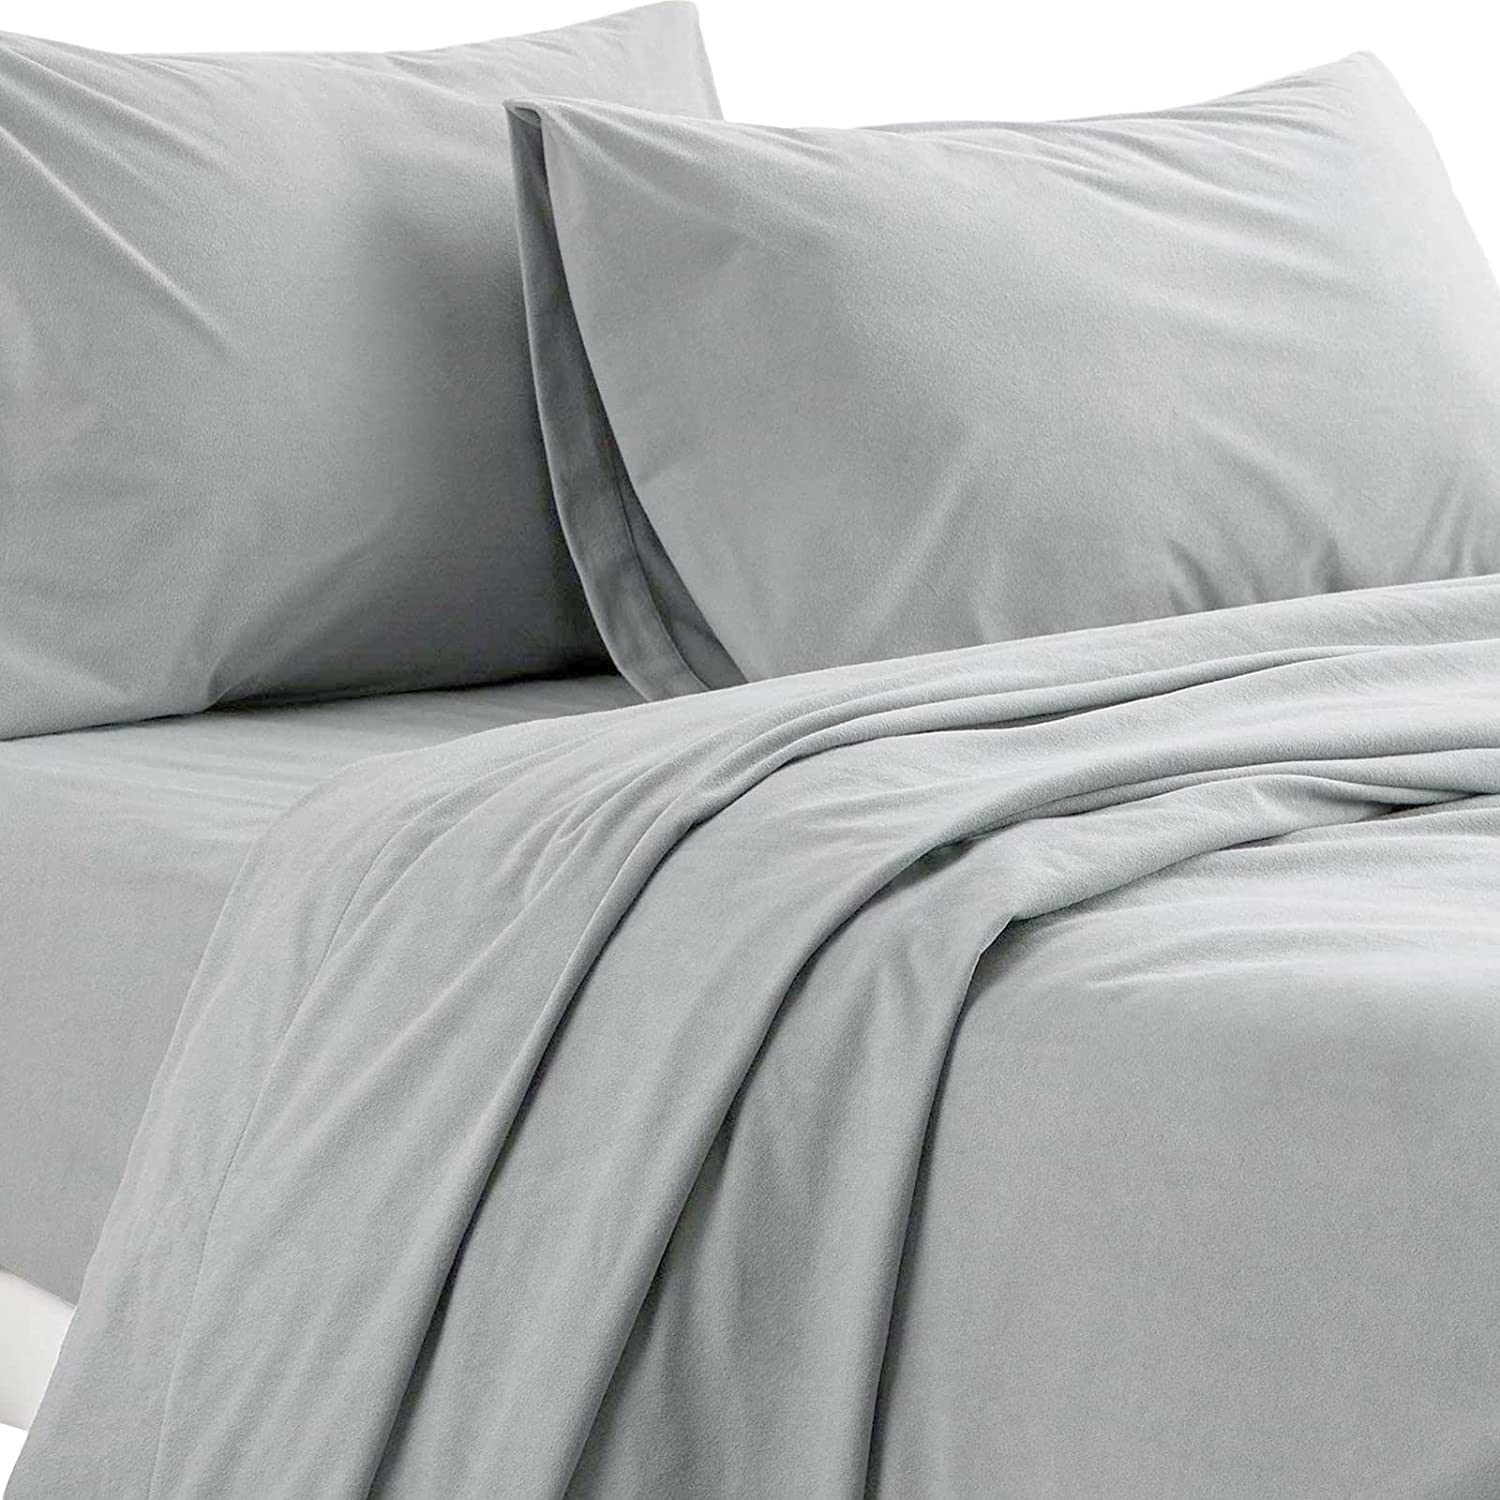 ZPECC King Free shipping on posting reviews Sheet Set-4 Piece Soft Bed Sheets Cou Set-1800 Finally popular brand Thread